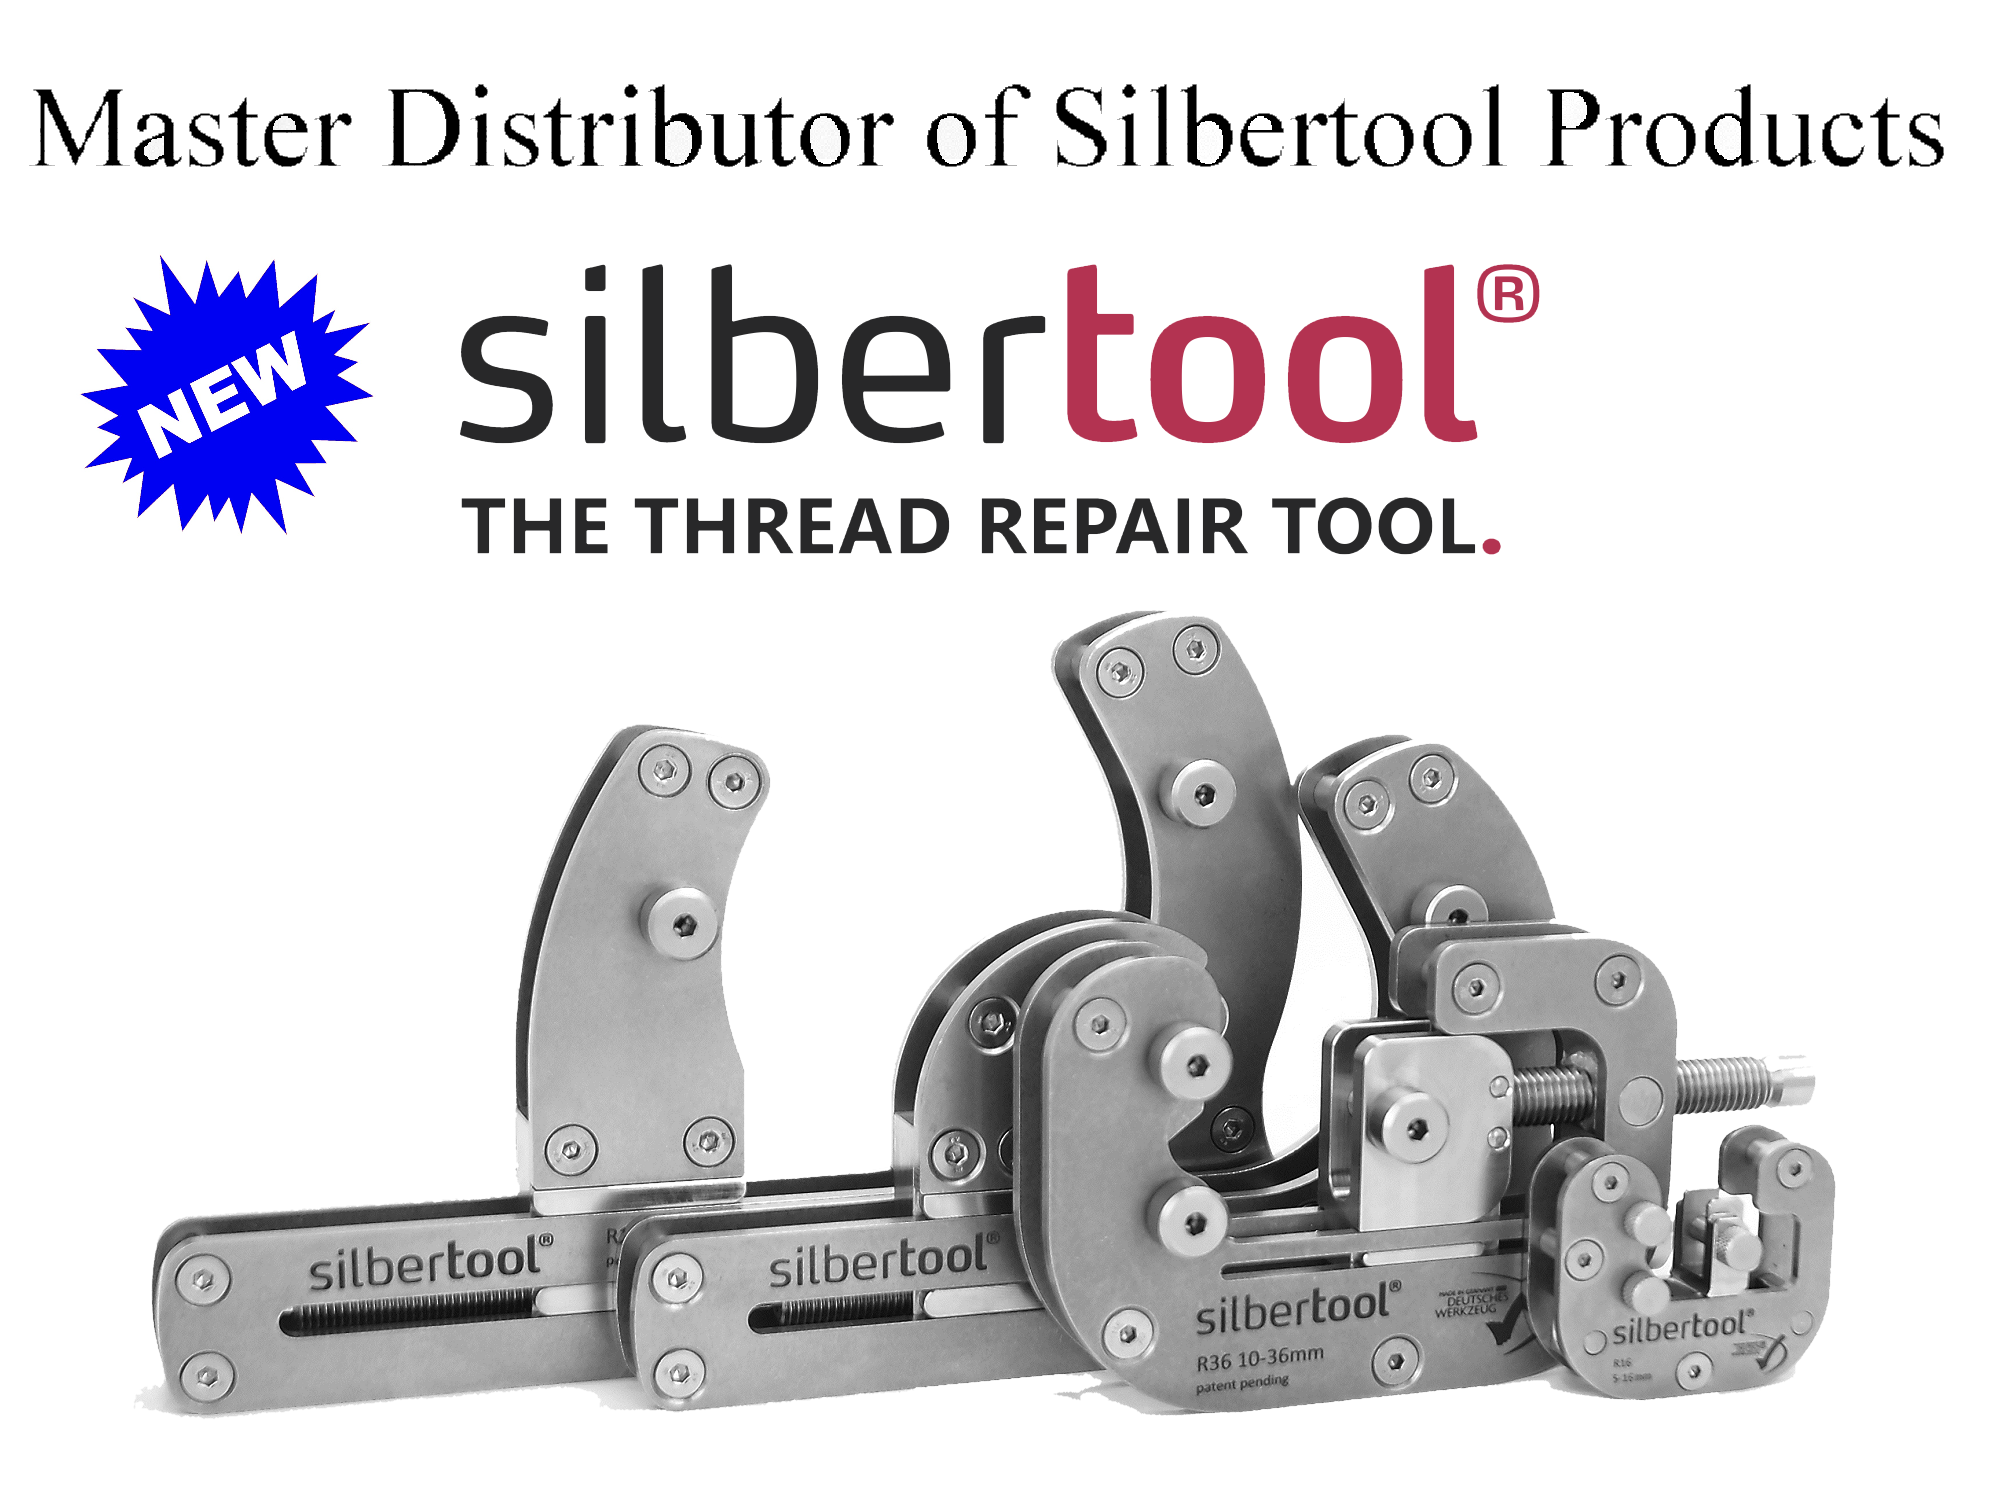 New Product - Silbertool